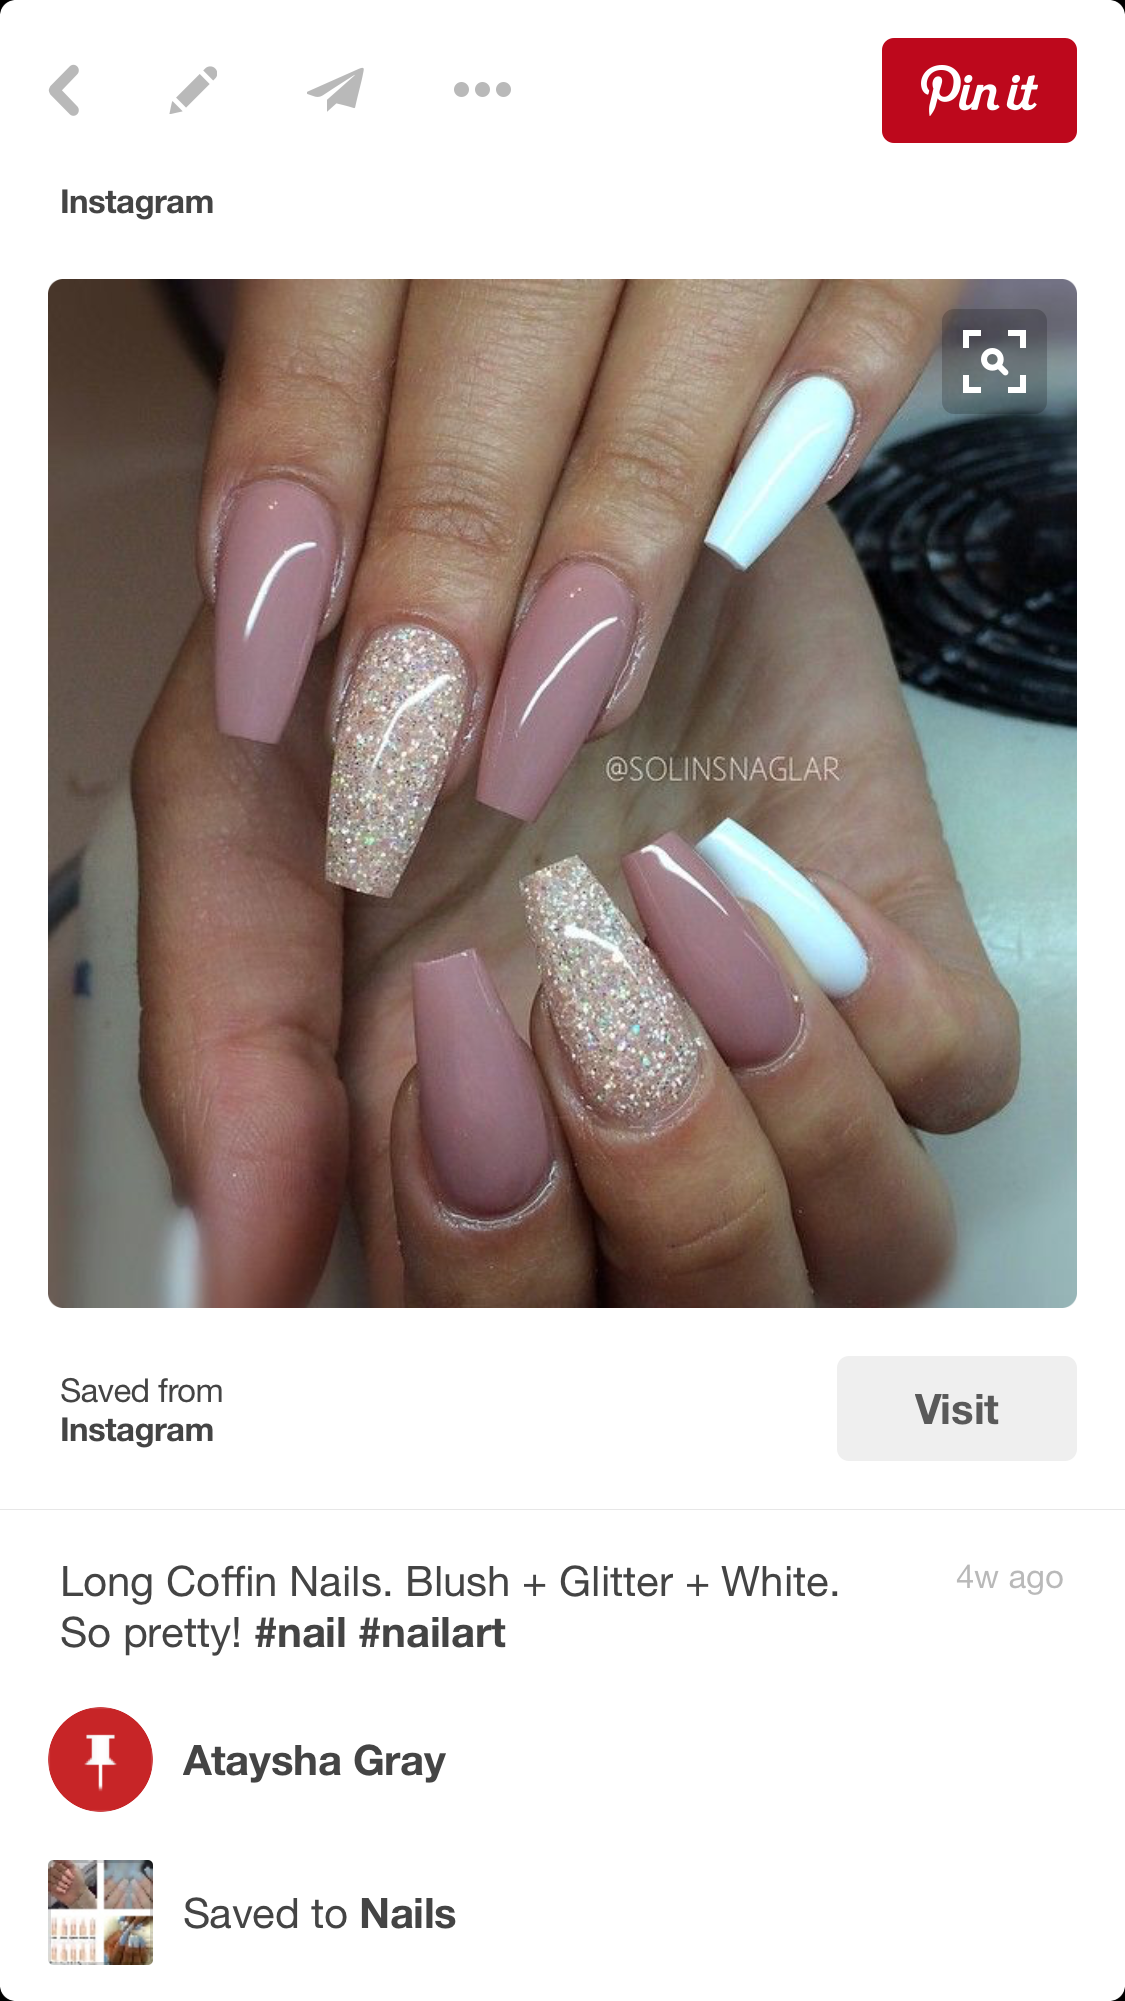 Pin by Ataysha Gray on Nails & Toes | Pinterest | Nail nail, Coffin ...